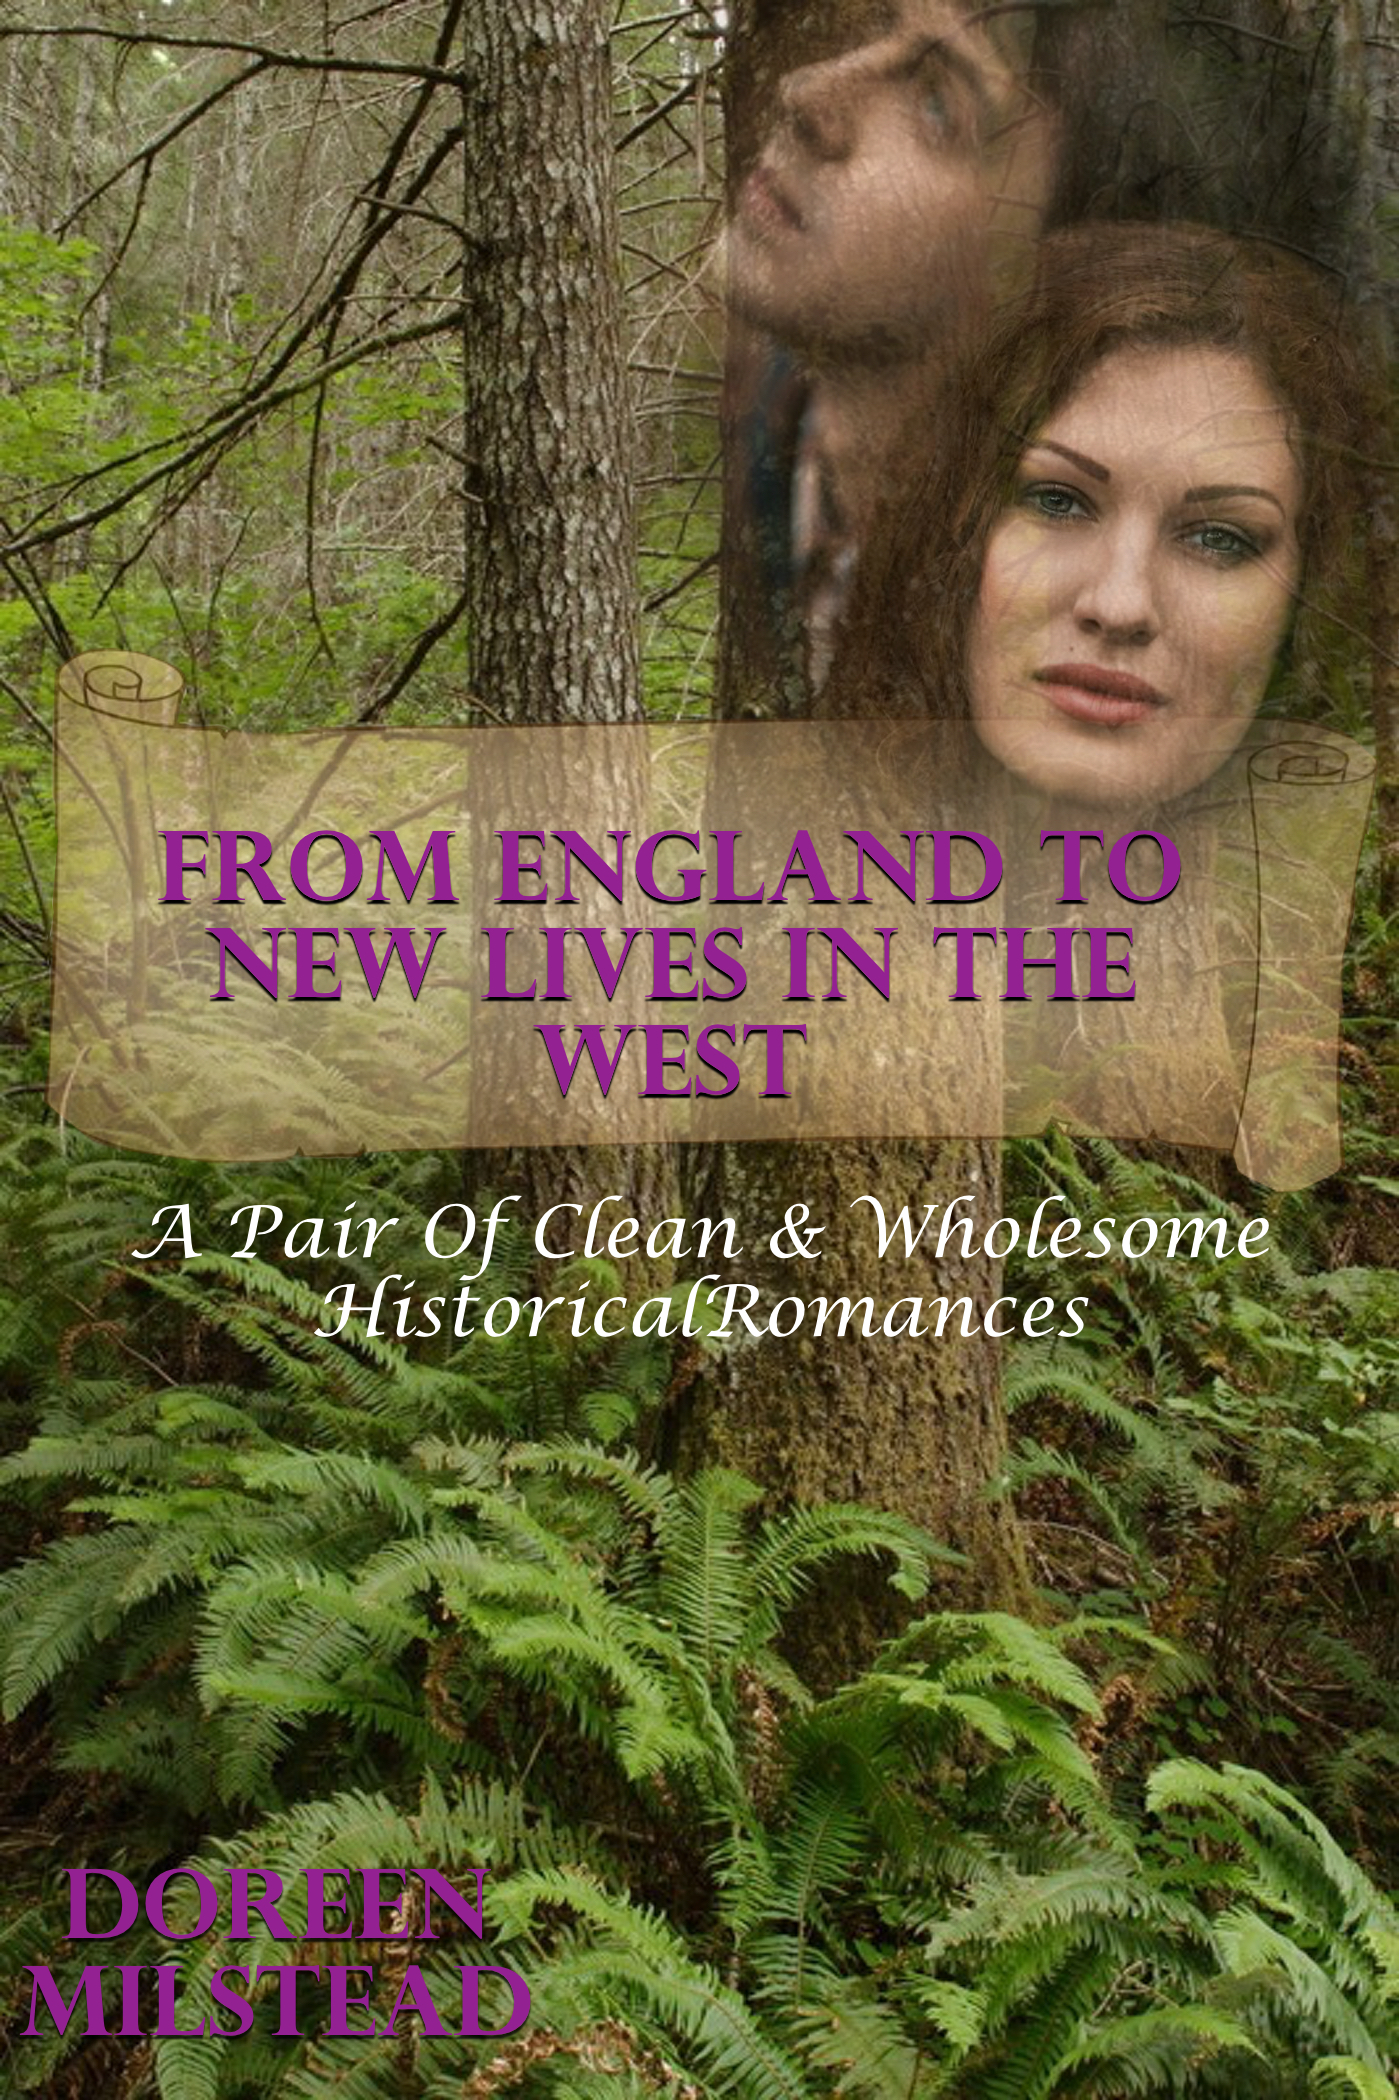 From England To New Lives In The West Doreen Milstead